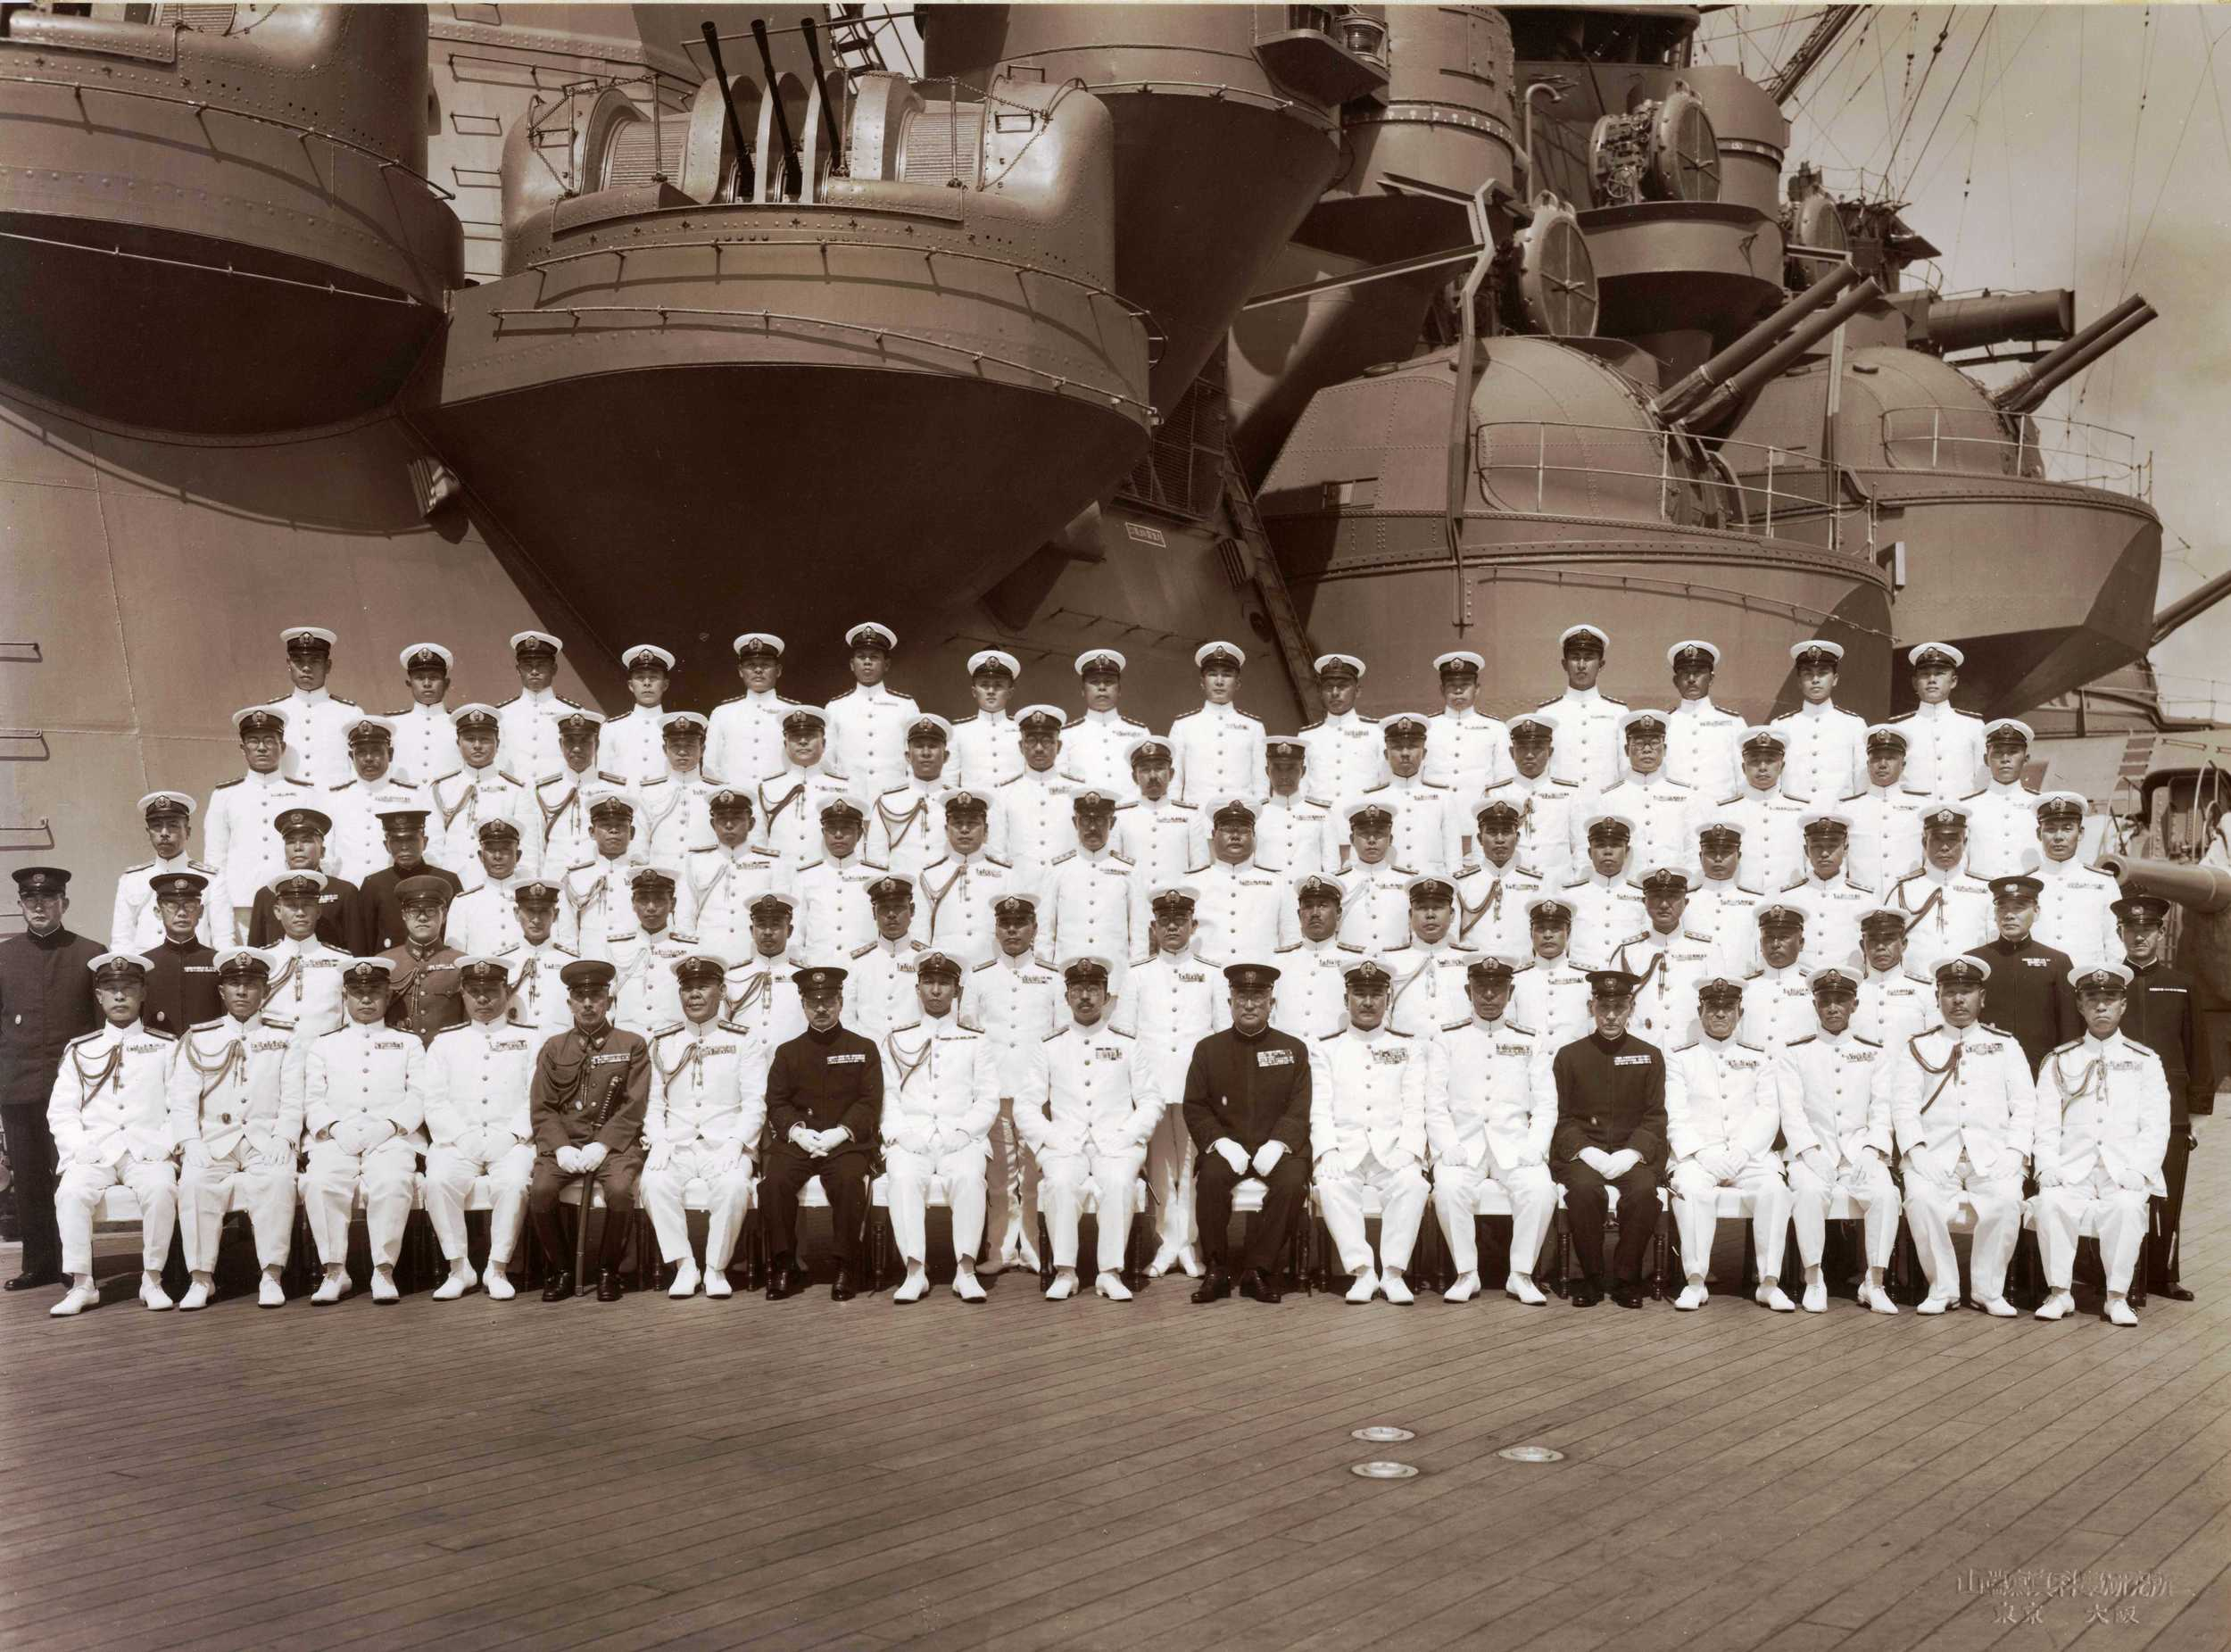 Japanese Emperor Hirohito and his staff pictured alongside the ship's crew aboard the Musashi in 1943.